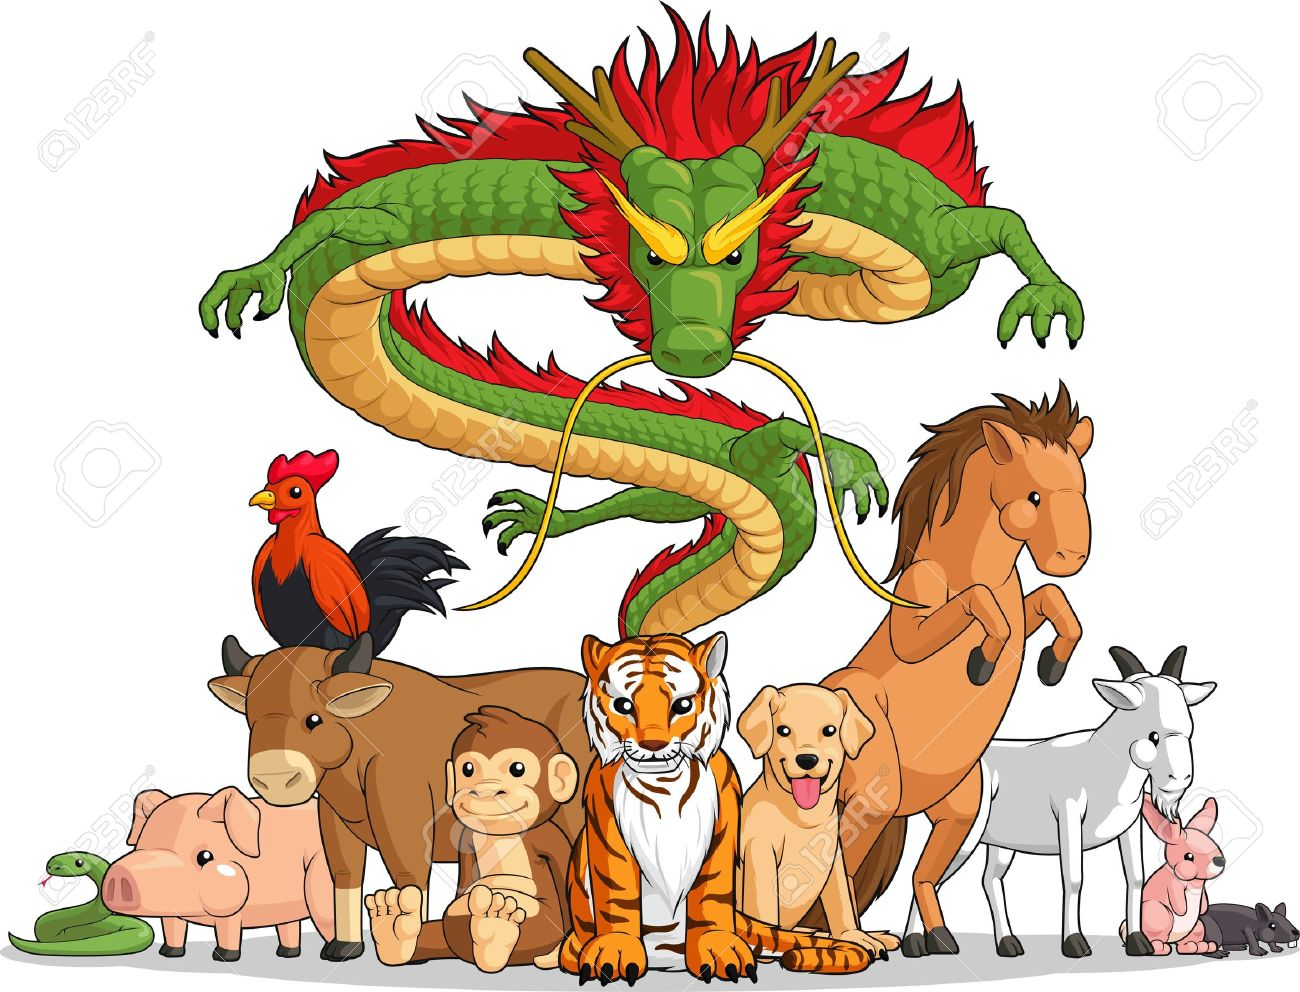 All 12 Chinese Zodiac Animals Together Royalty Free Cliparts ...